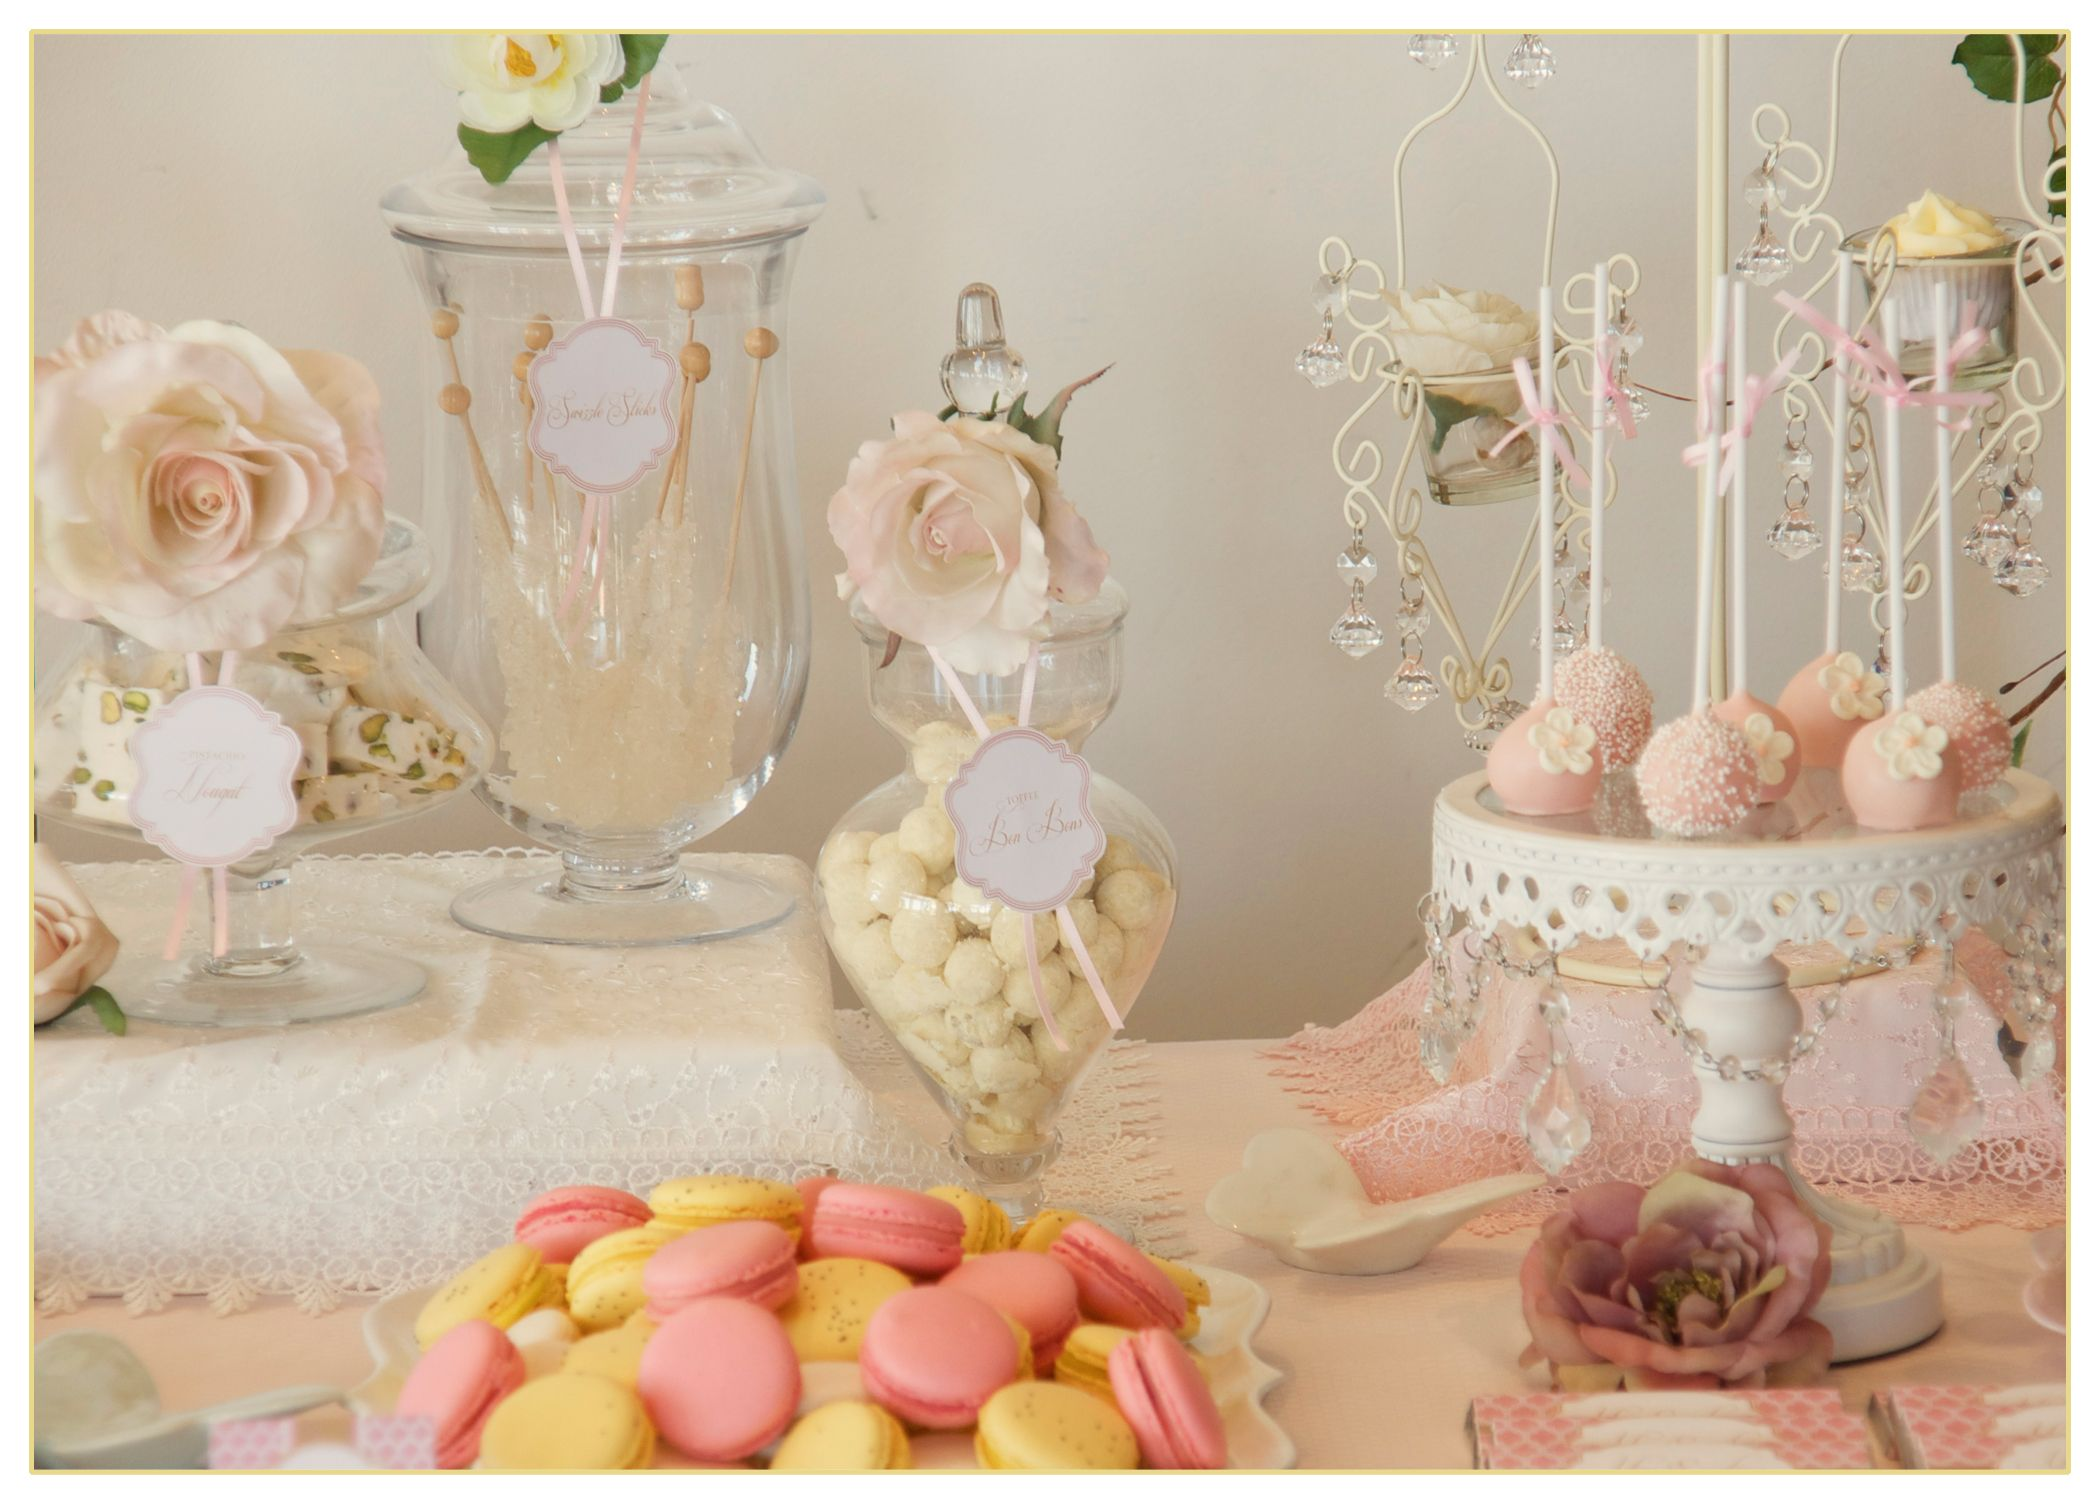 Whimsical and romantic dessert table featured on www